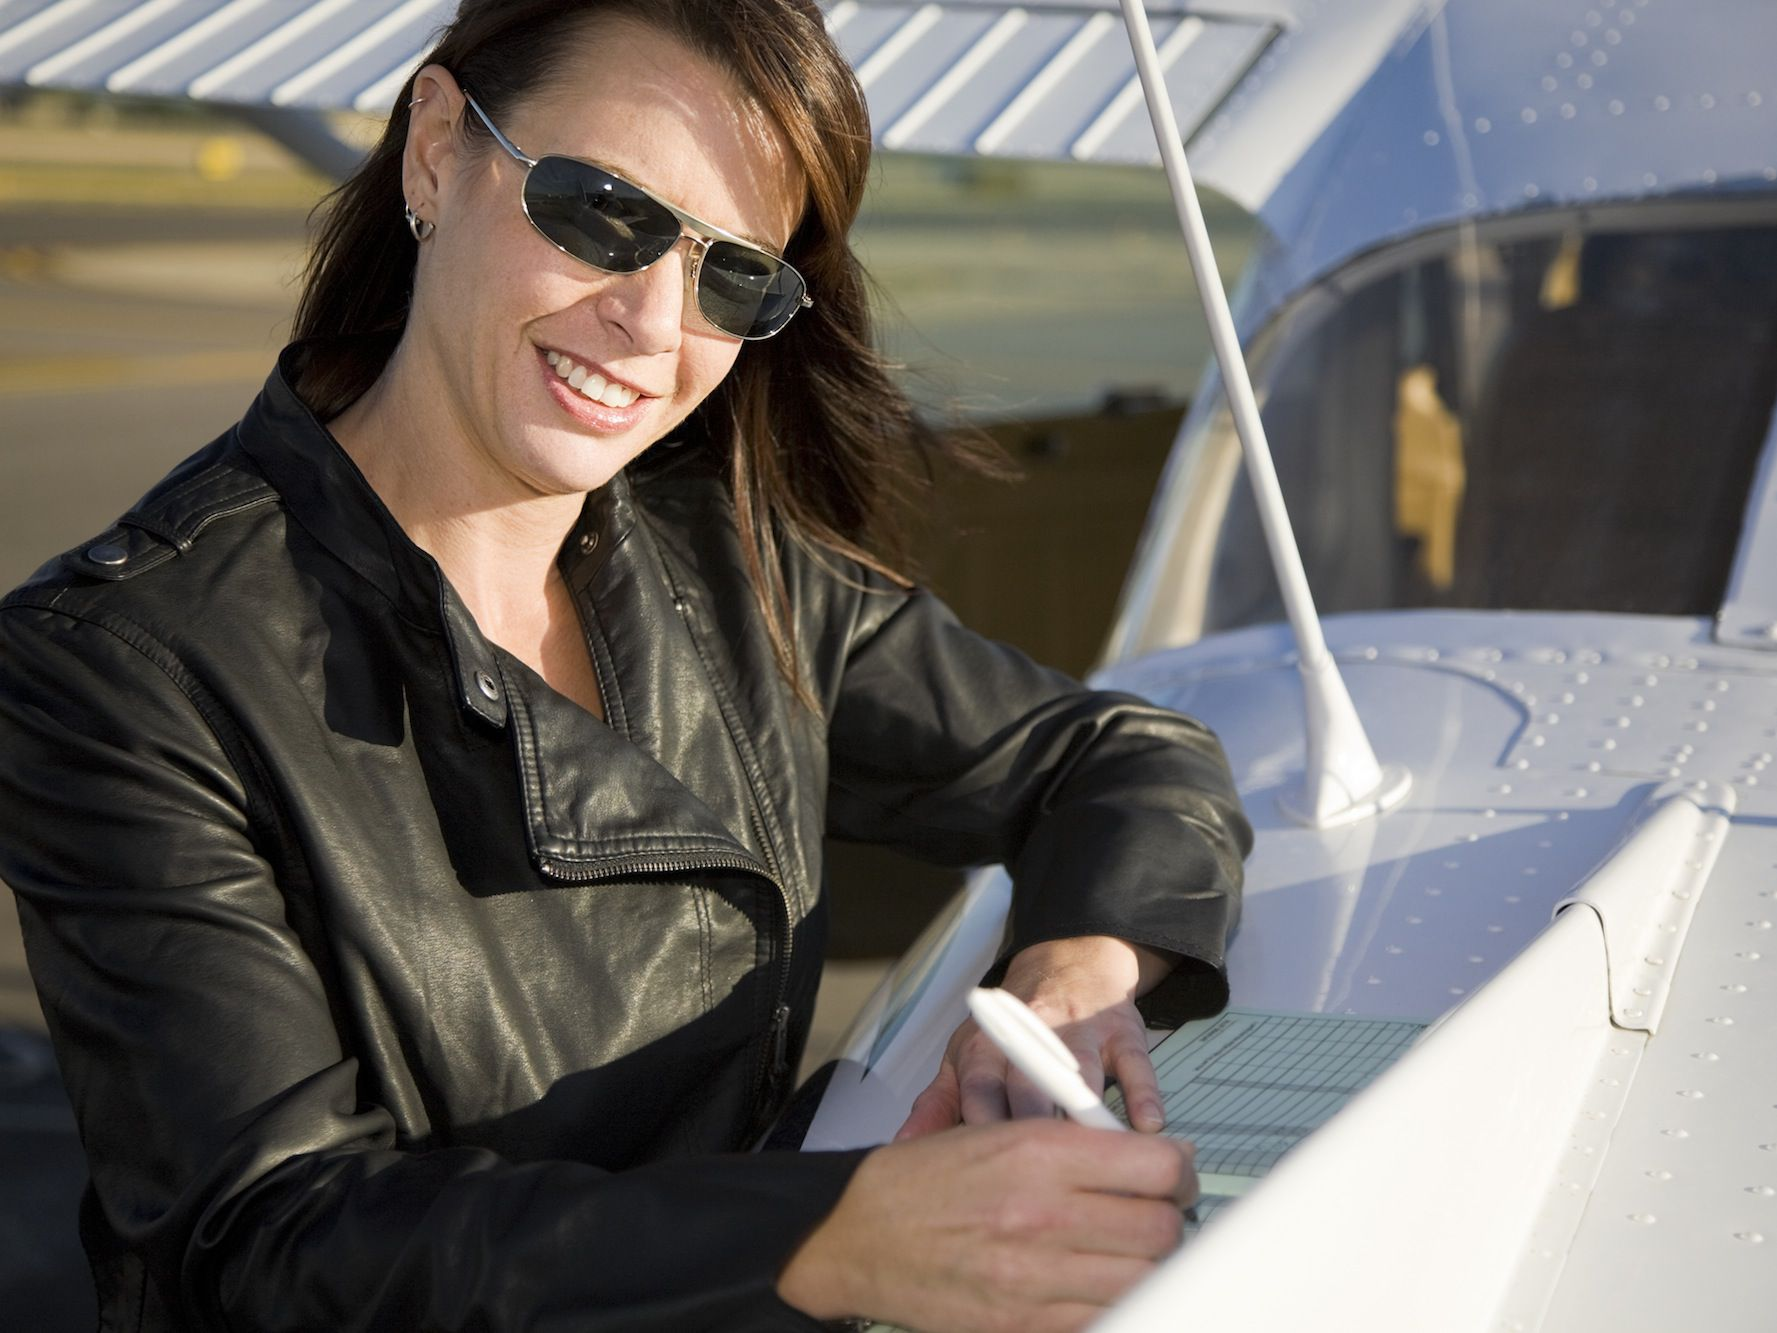 Scholarships for Pilot Training